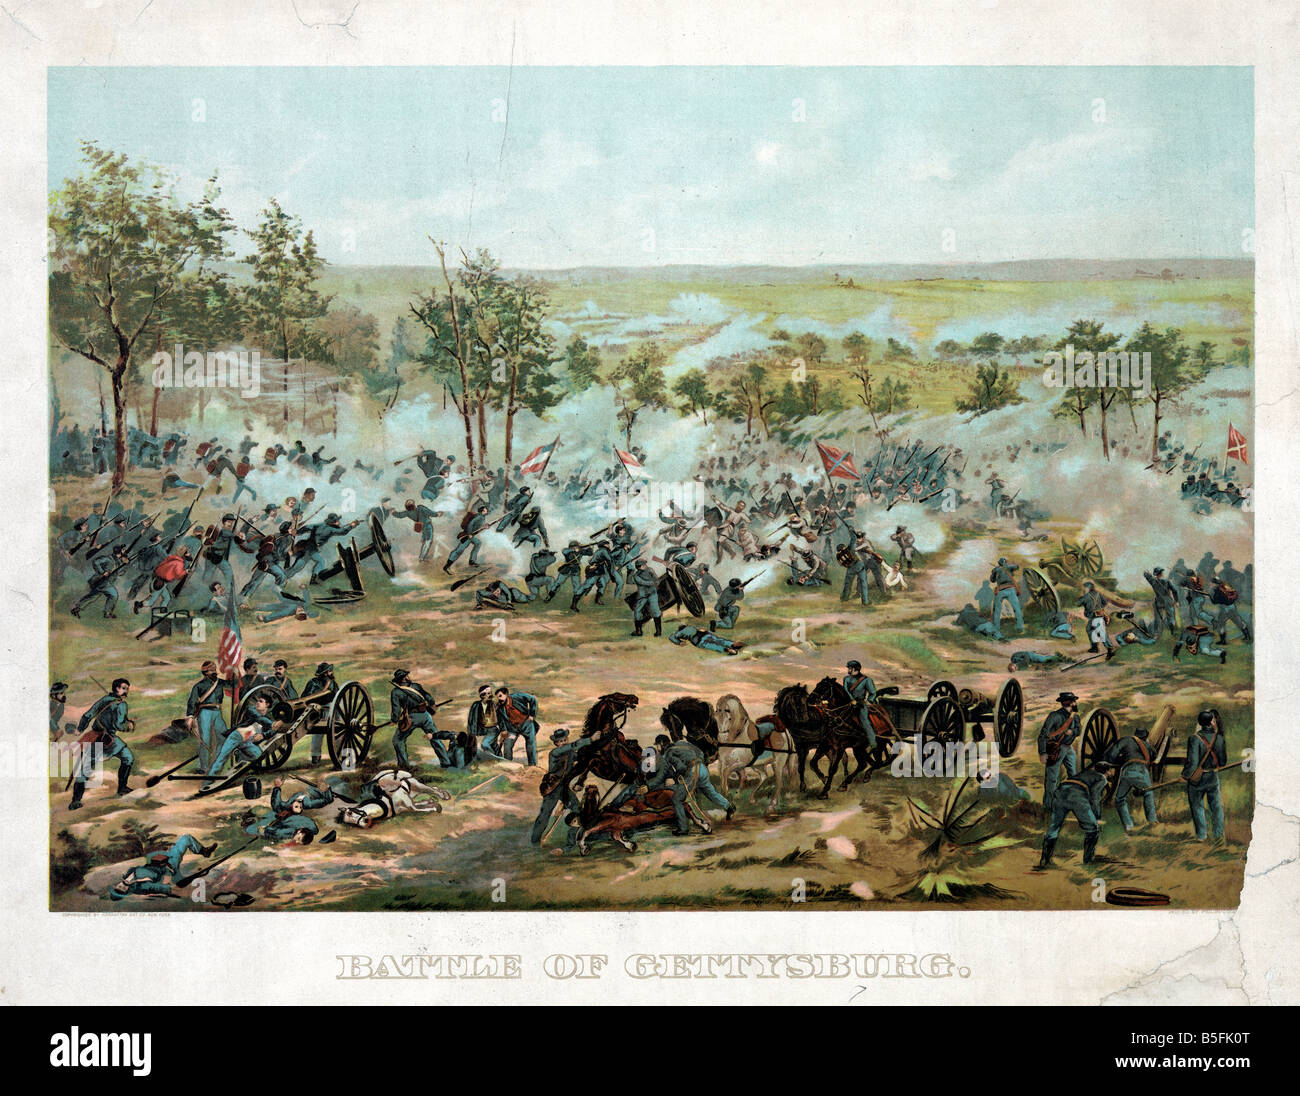 the relevance of the battle of gettysburg in the american civil war The battle of gettysburg, fought from july 1 to july 3, 1863, is considered the most important engagement of the american civil war after a great victory over union forces at chancellorsville .